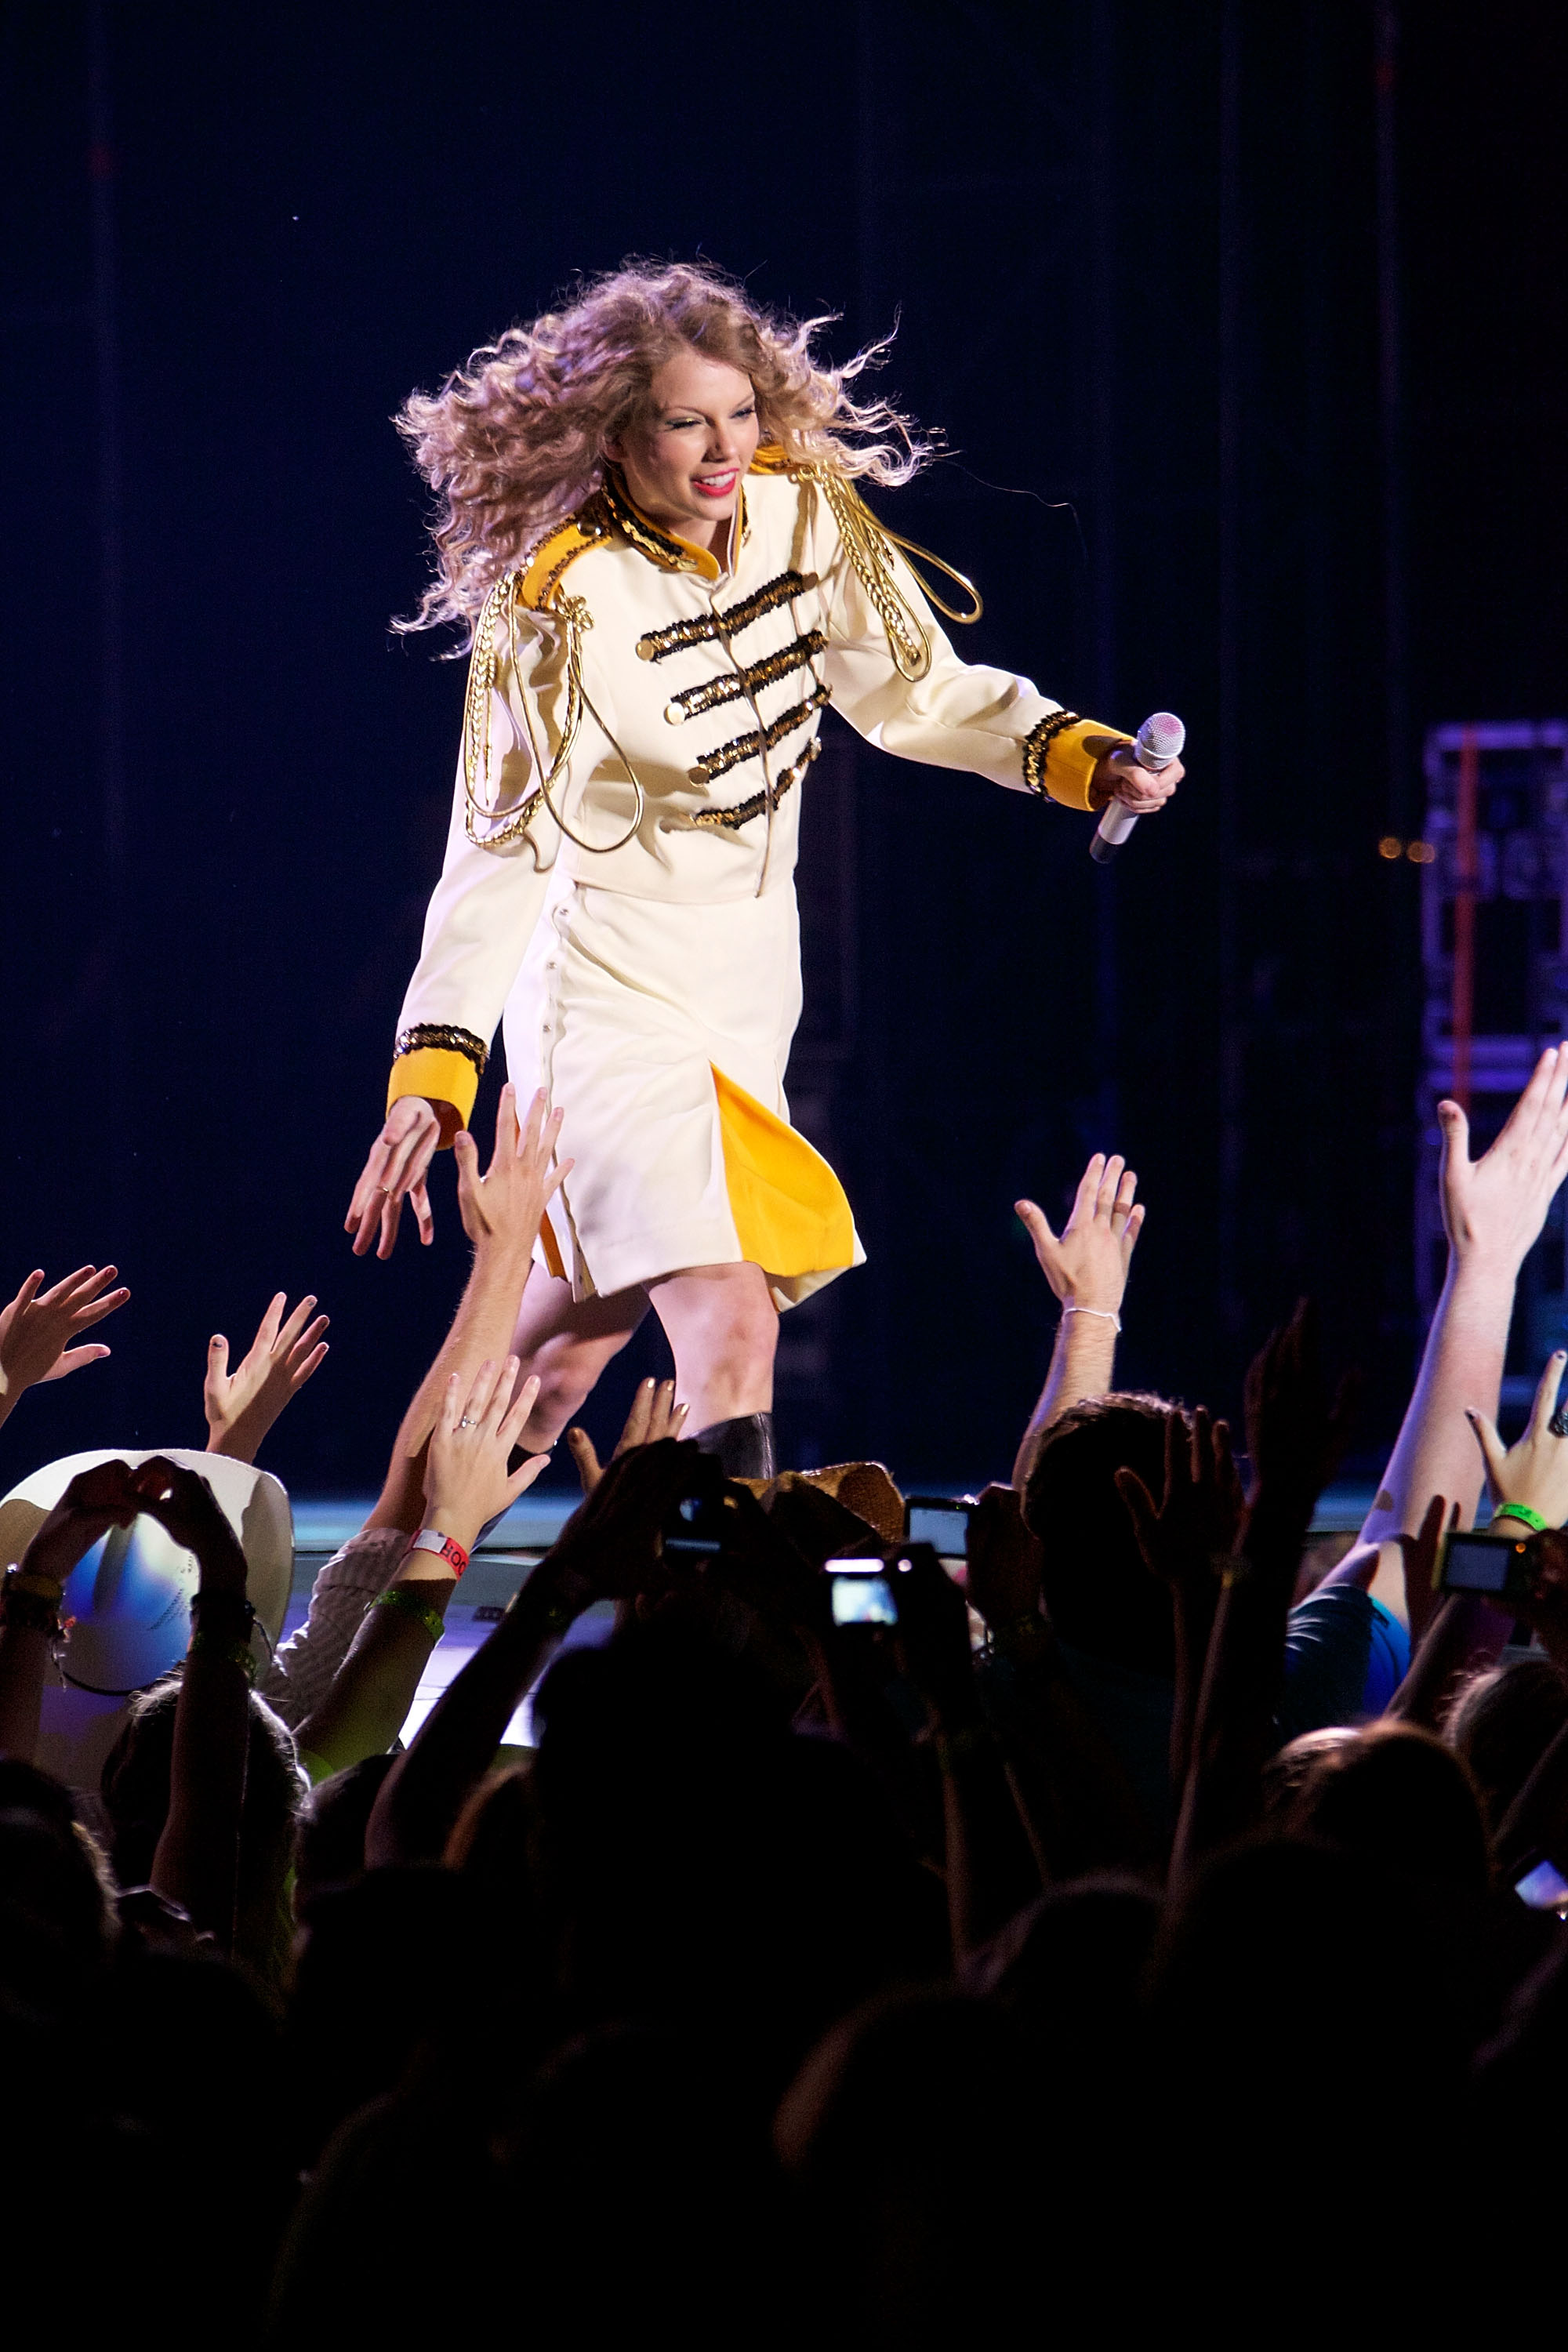 32576_Taylor_swift_performs_her_Fearless_Tour_at_Tiger_Stadium_015_122_156lo.jpg